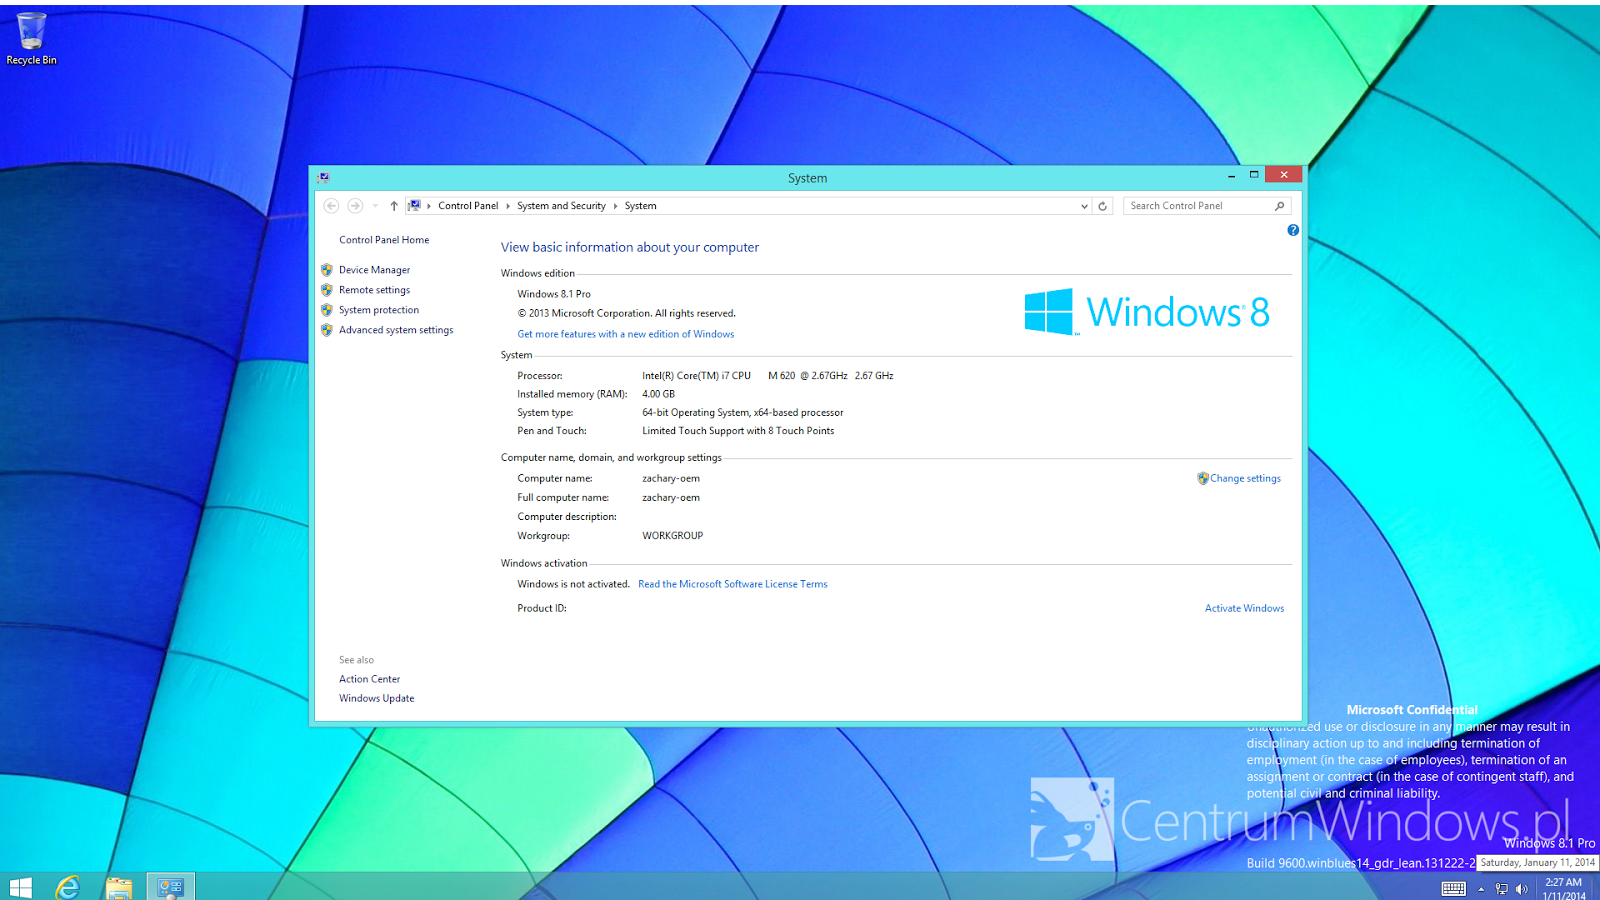 Windows 8.1 update 1 new screenshot